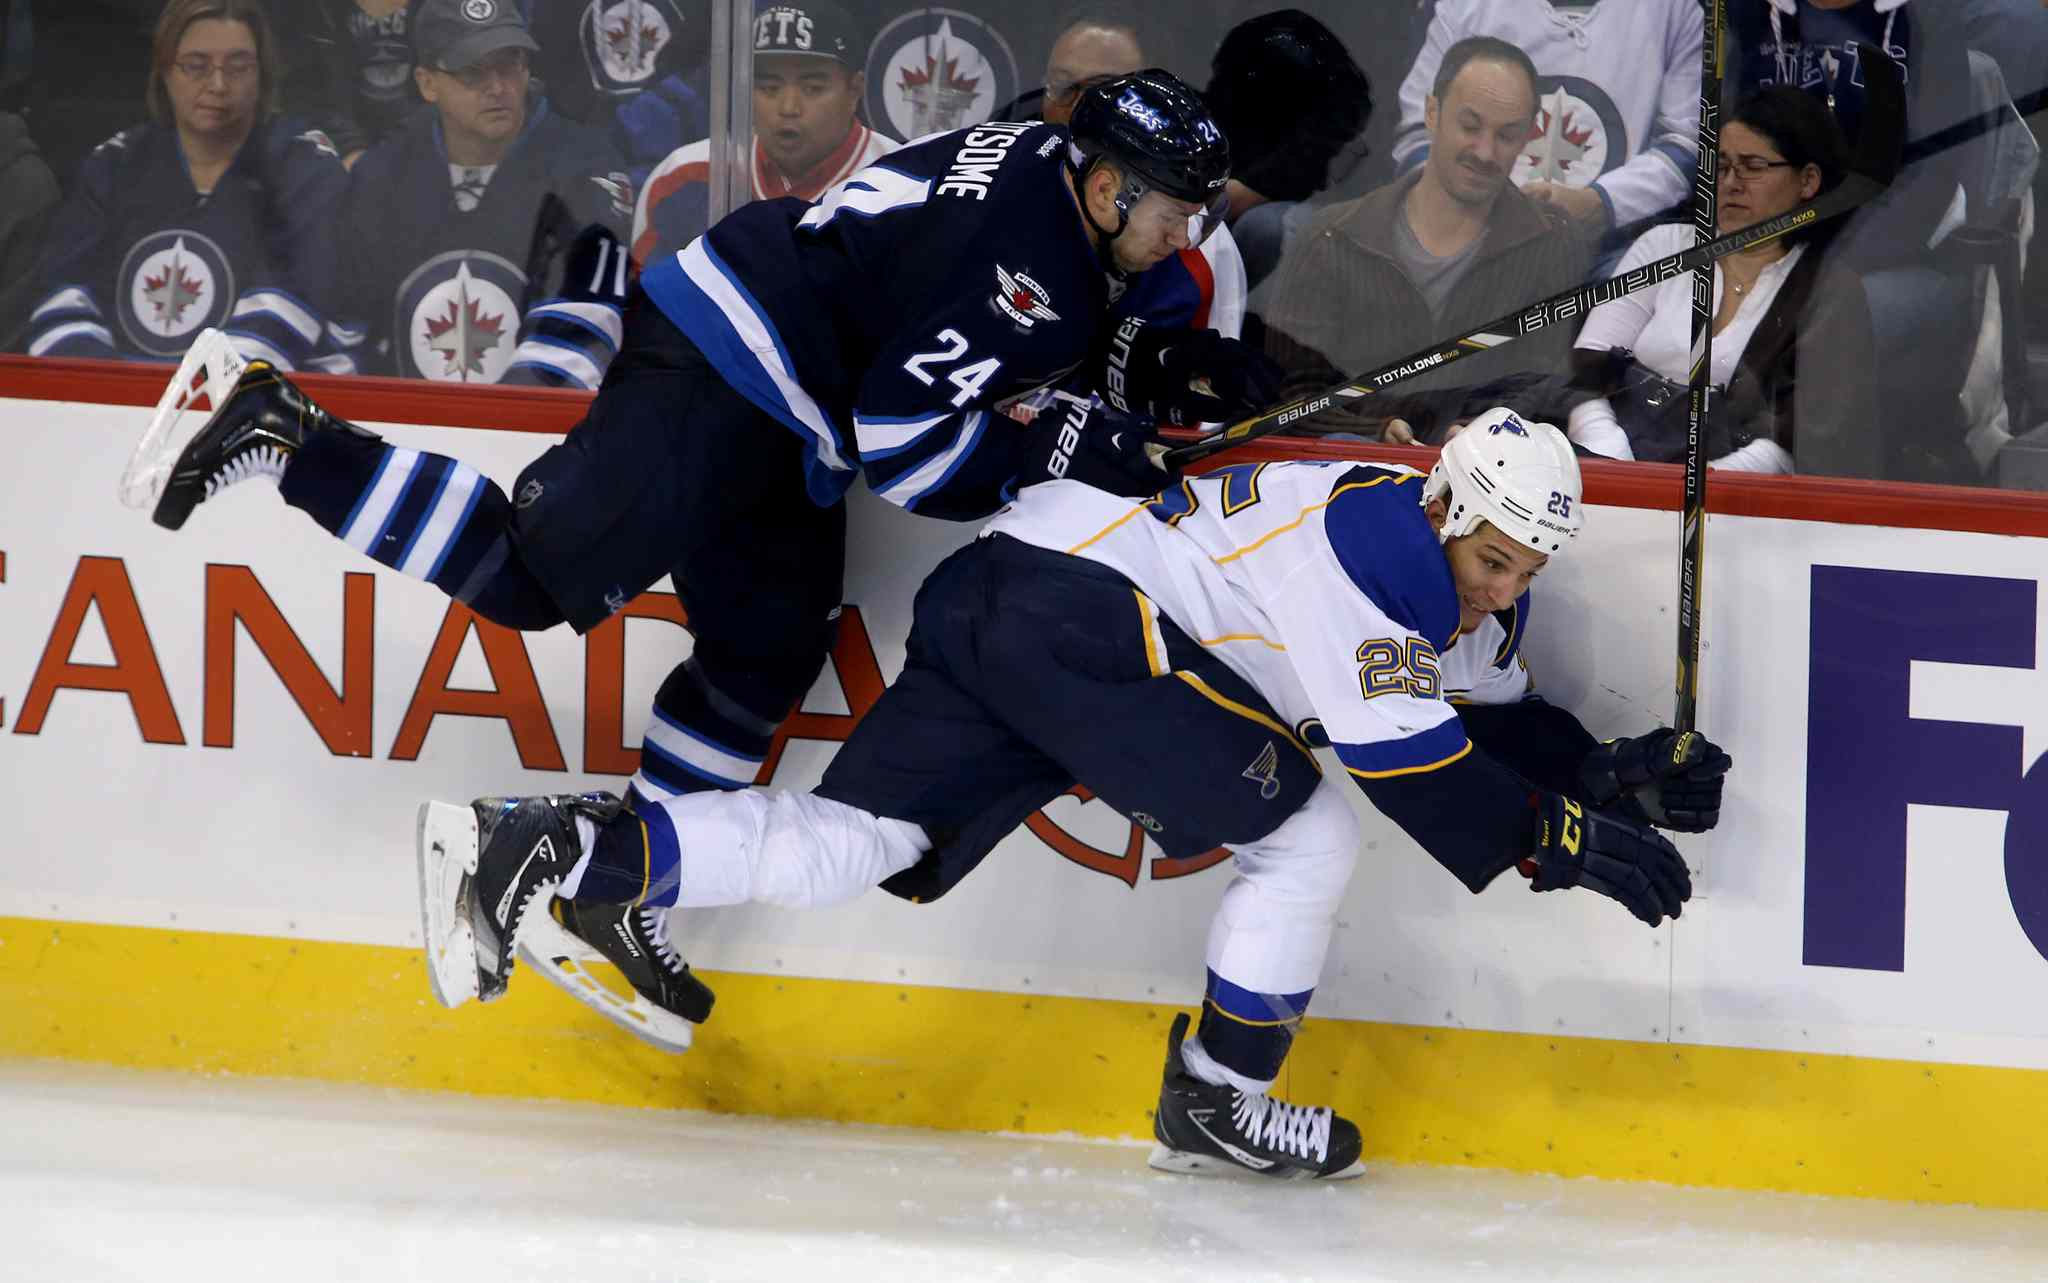 Winnipeg Jets defenceman Grant Clitsome collides with St. Louis Blues' Chris Stewart during the third period.